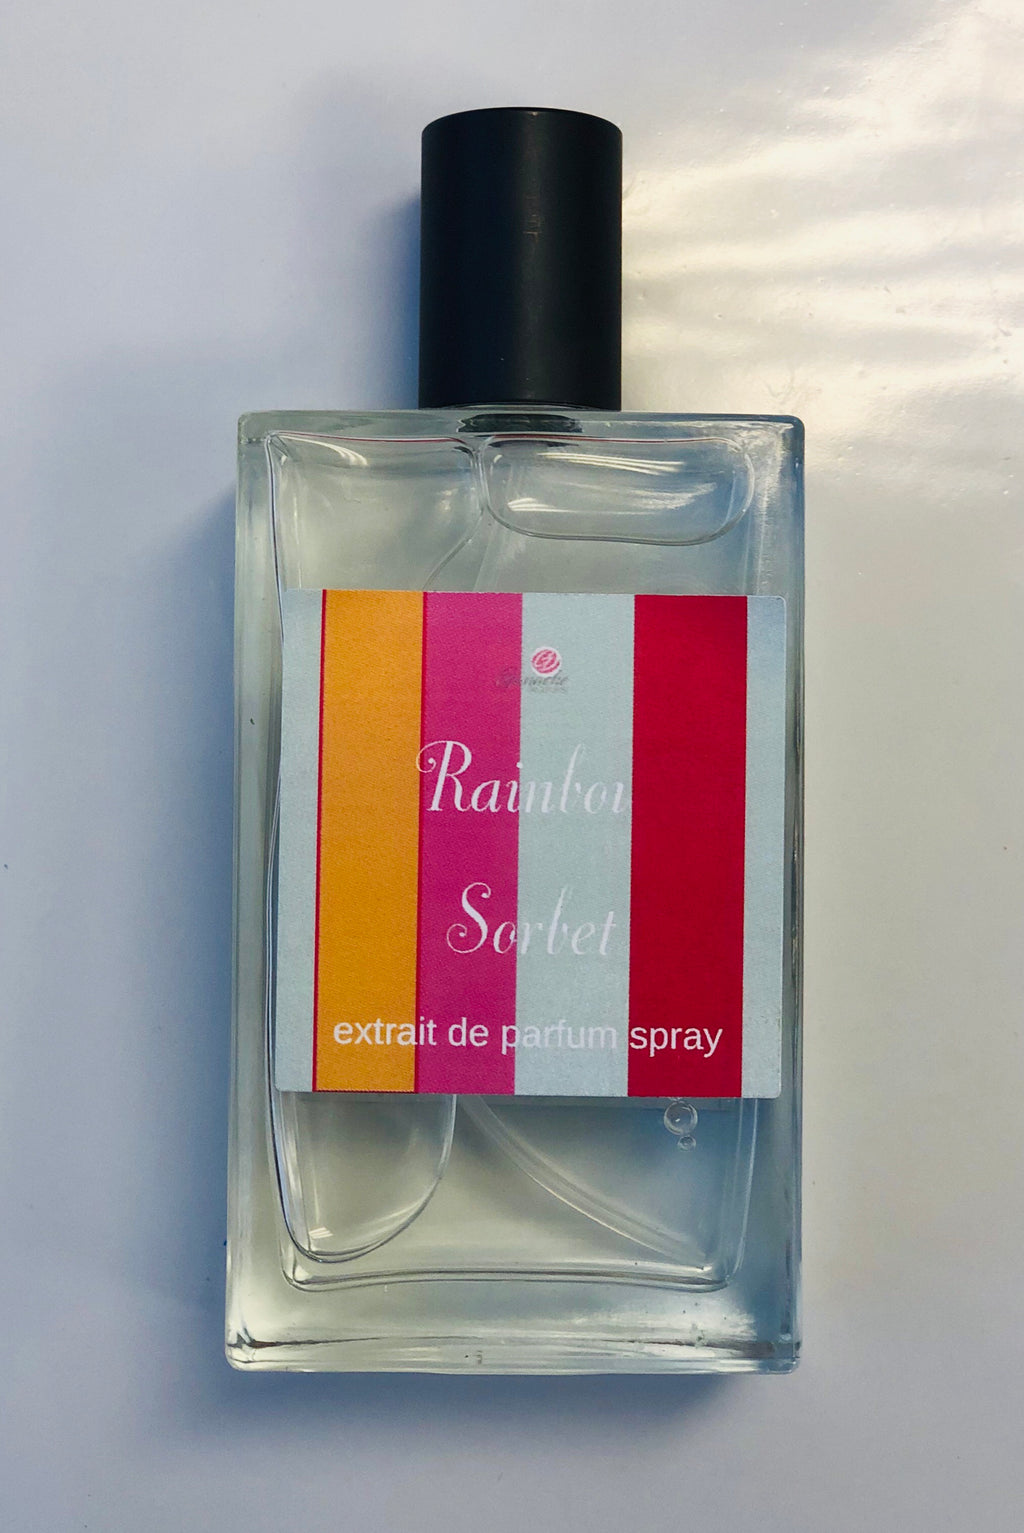 Rainbow Sorbet Limited Edition Handmade Eau de Parfum Spray